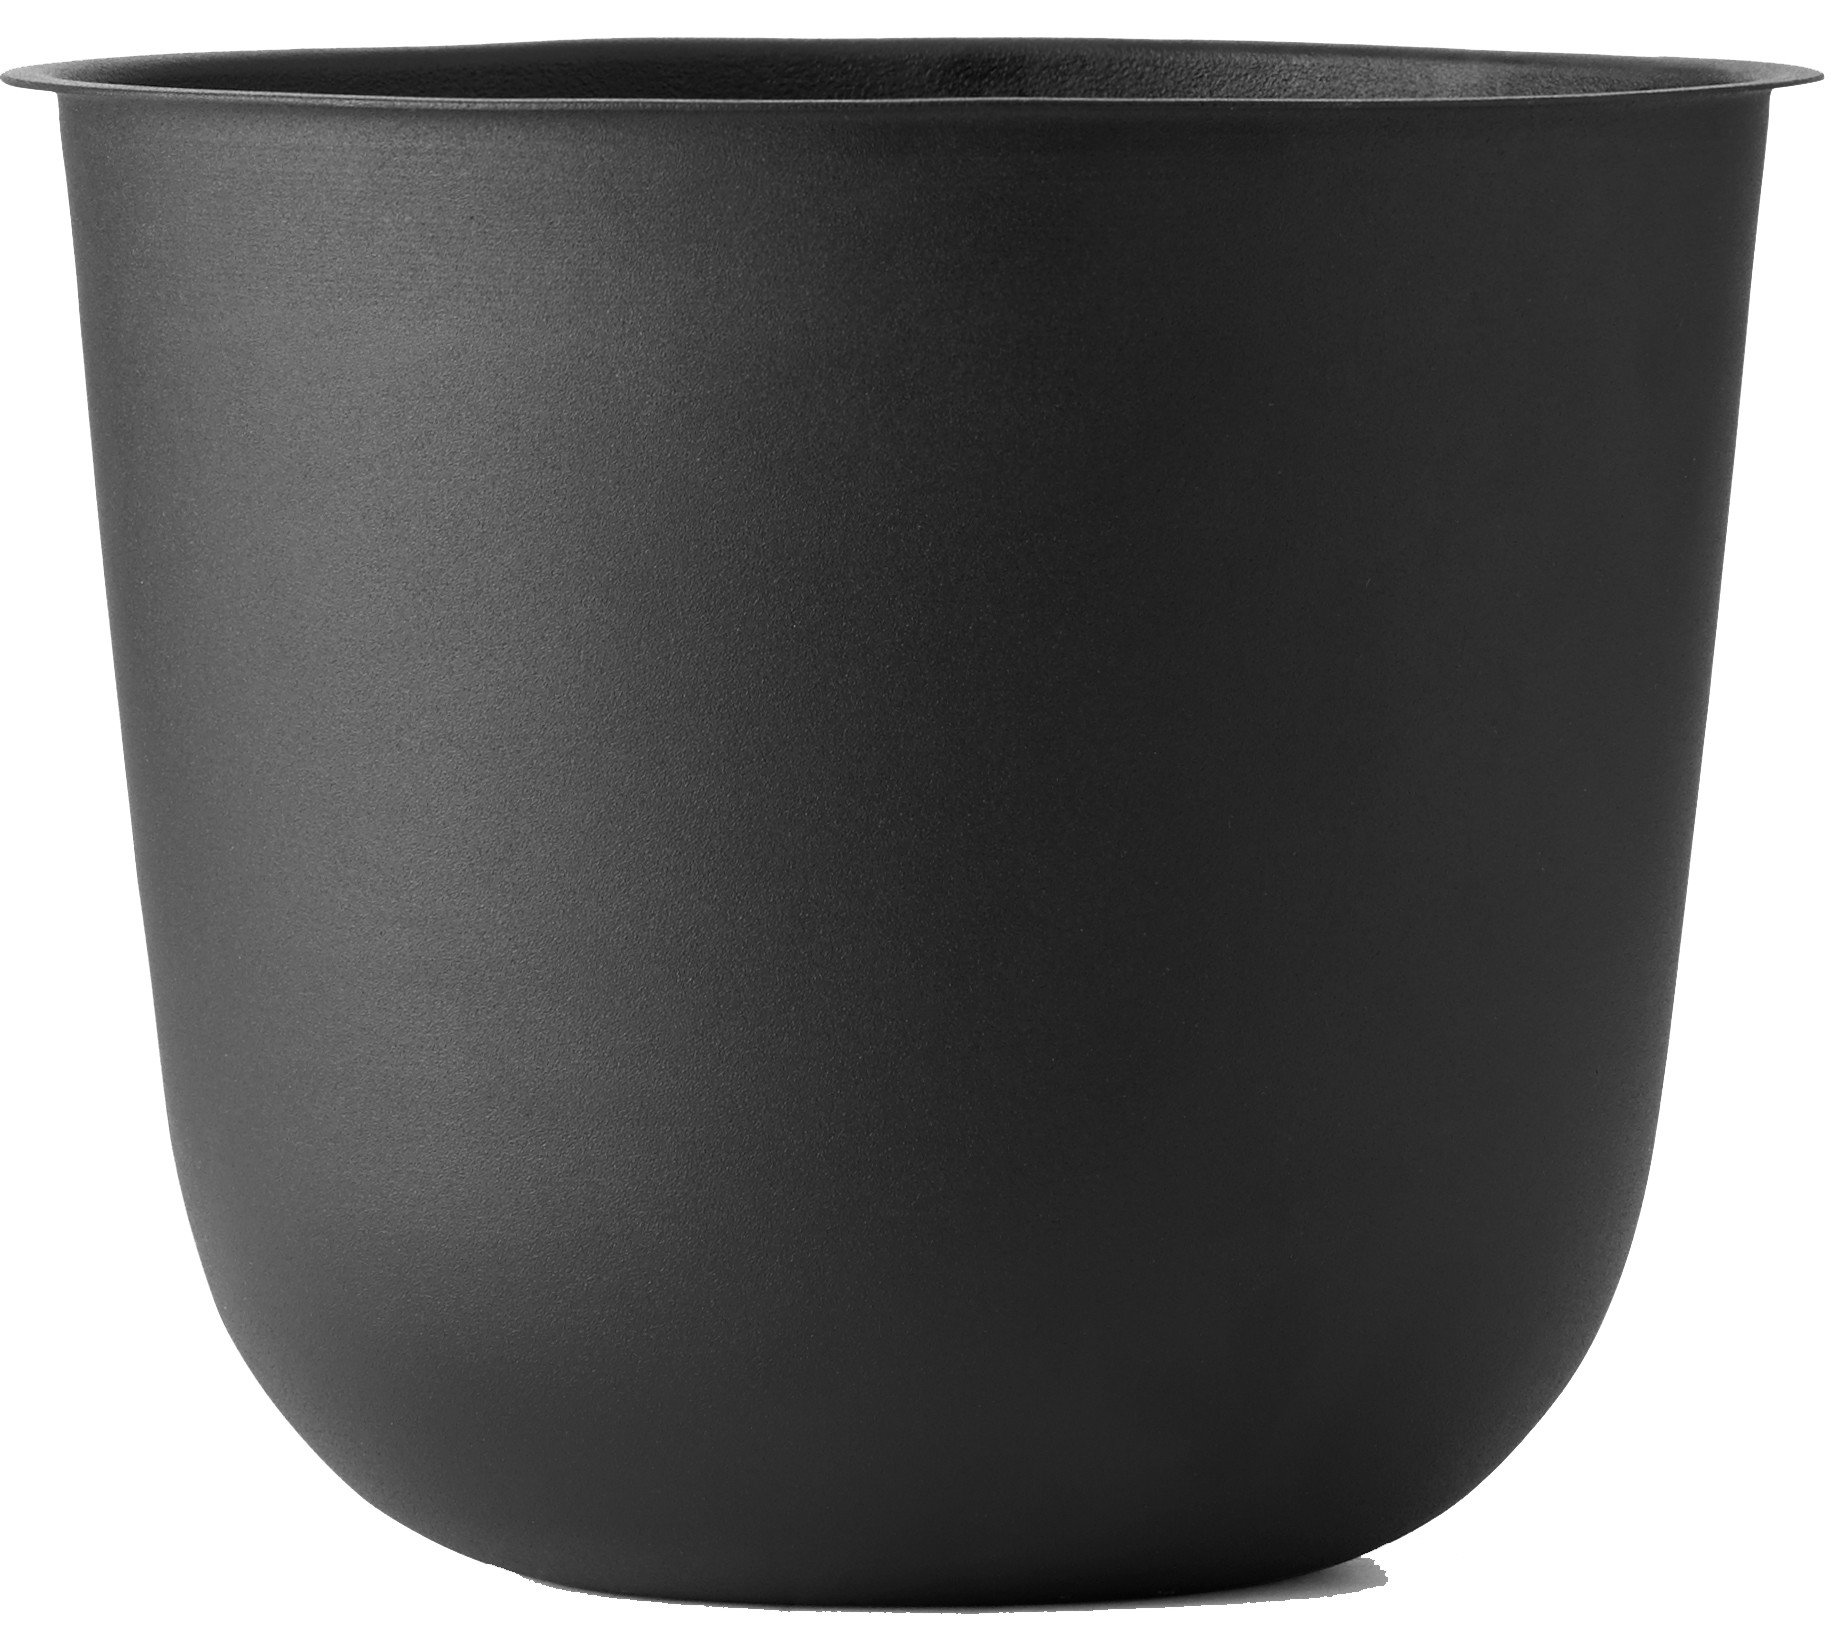 Wire Pot Black, by Norm Architects for Menu